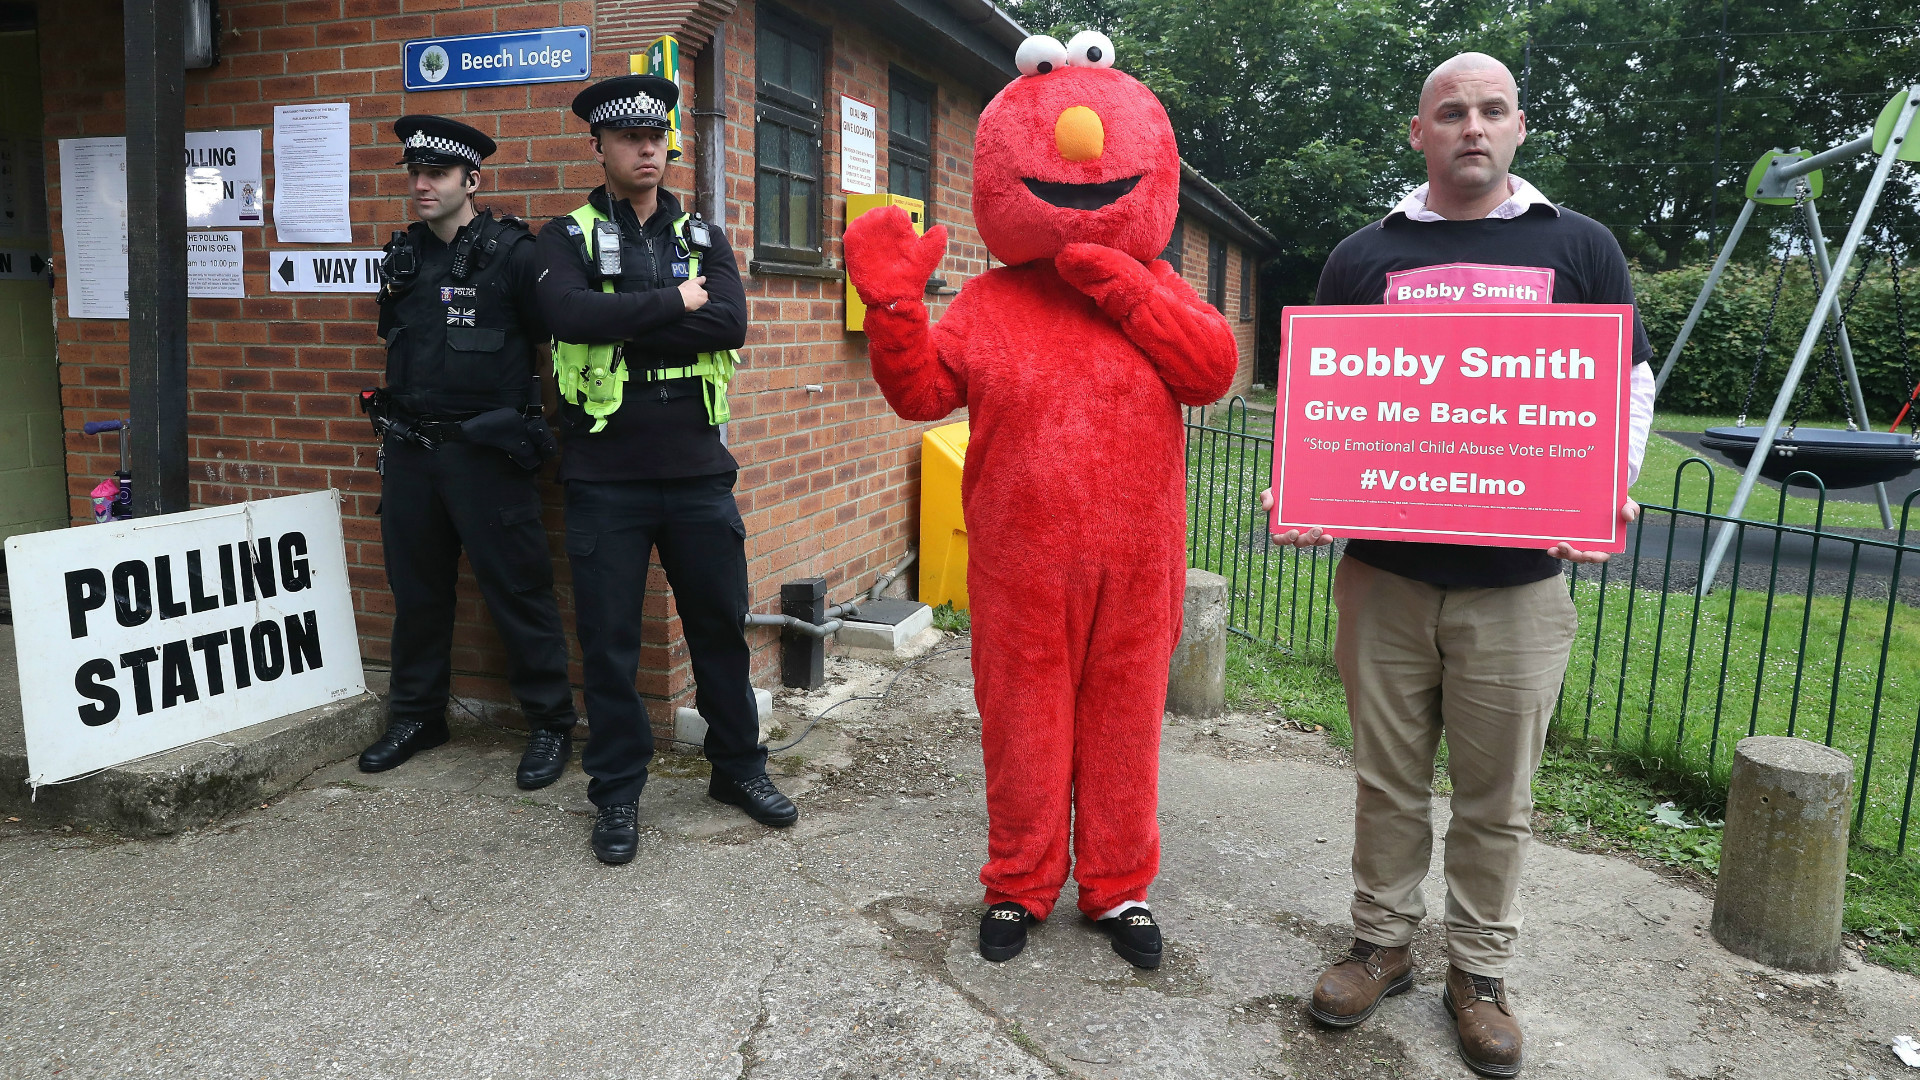 Elmo standing for election.